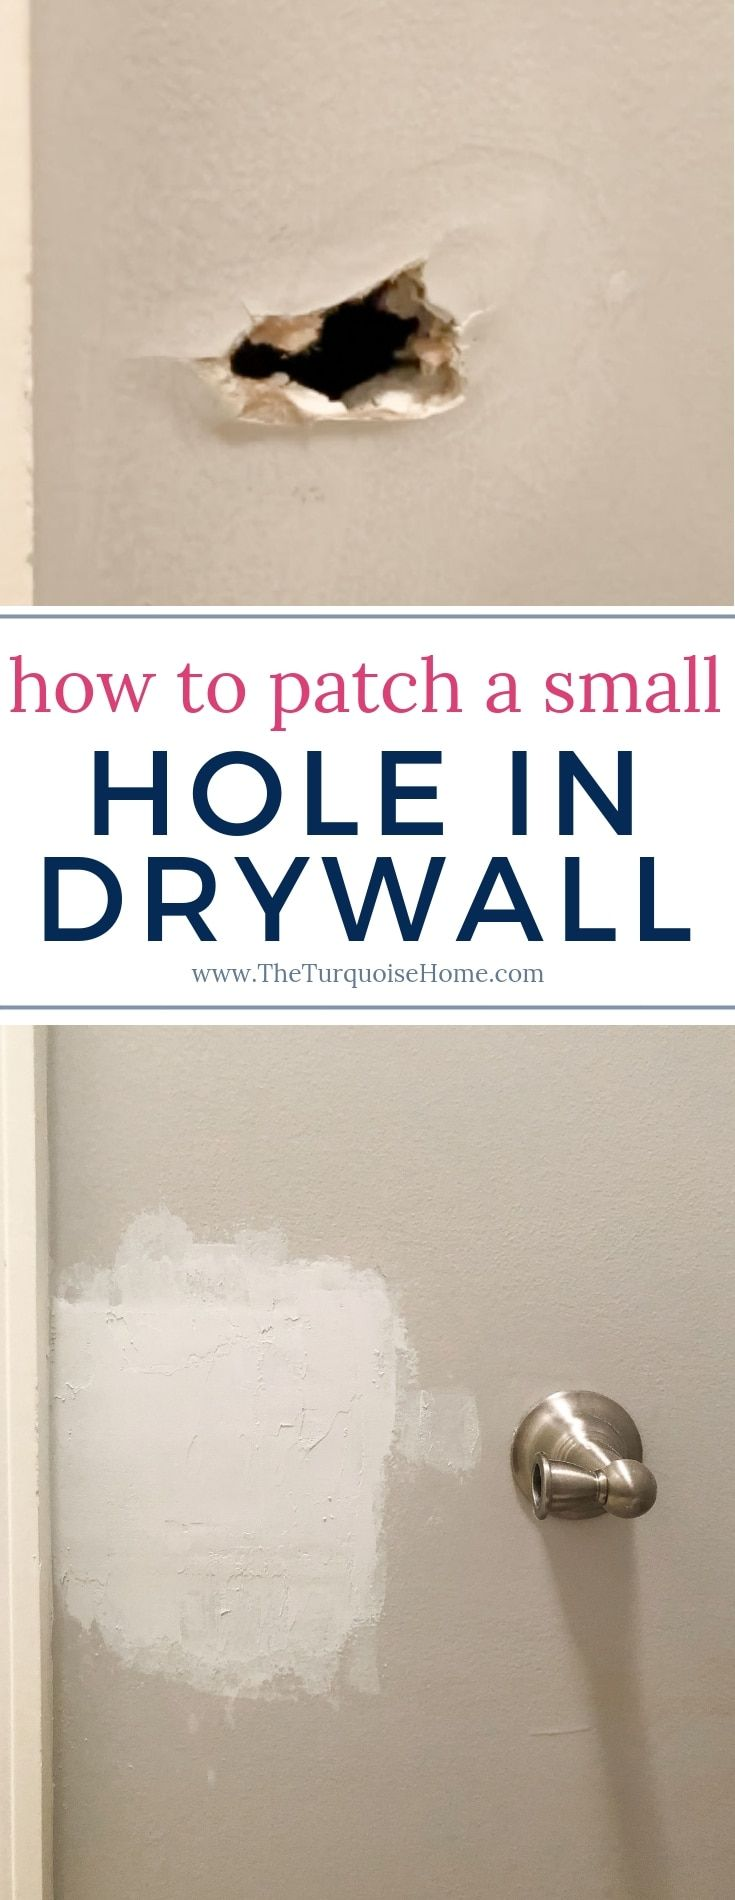 How to Patch a Small Hole in Drywall  Drywall repair, Home repair